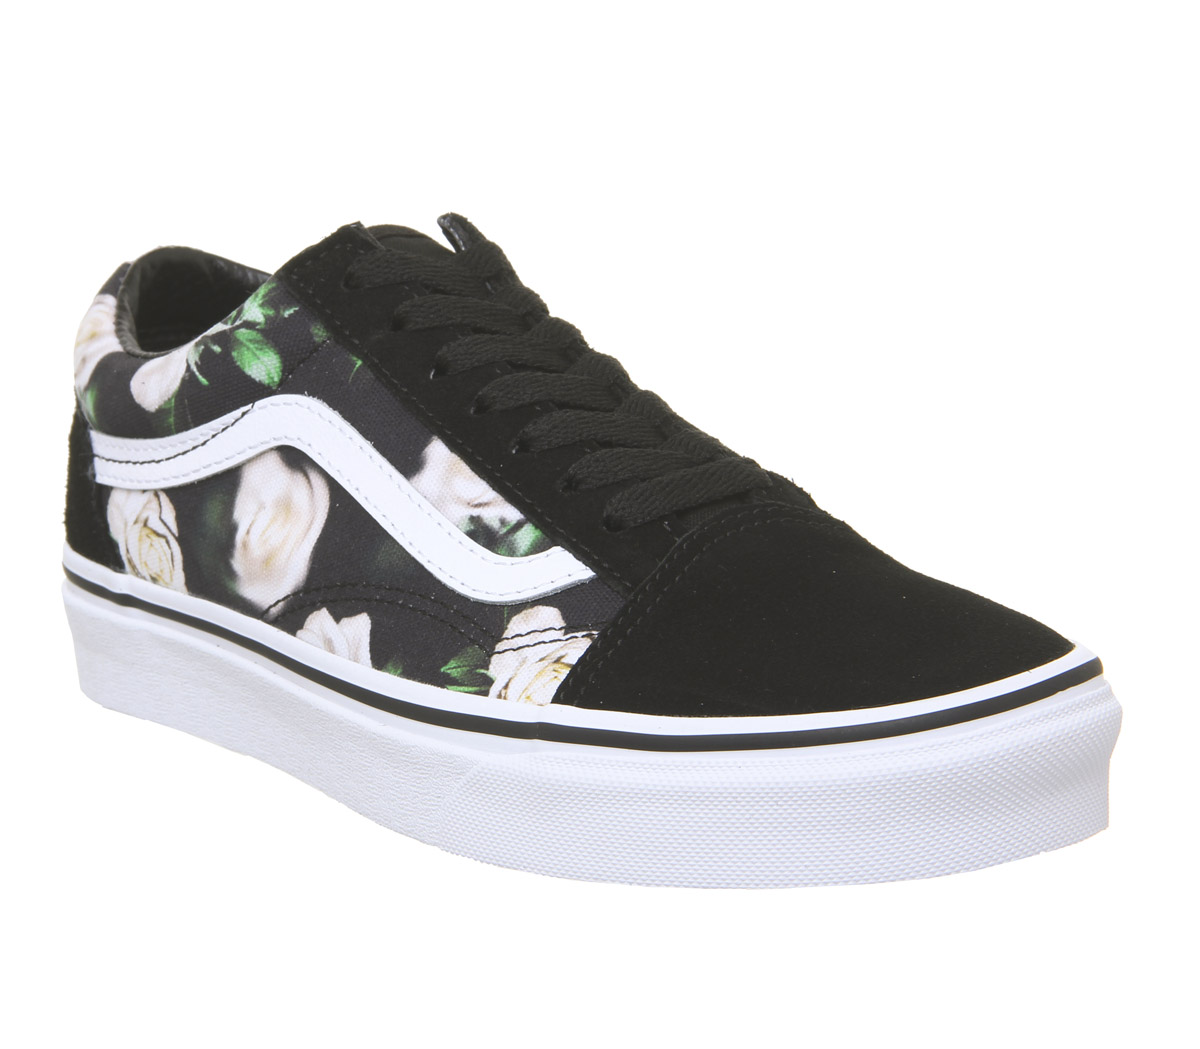 fc53ff9b2d Sentinel Womens Vans Old Skool Trainers Black Floral True White Trainers  Shoes